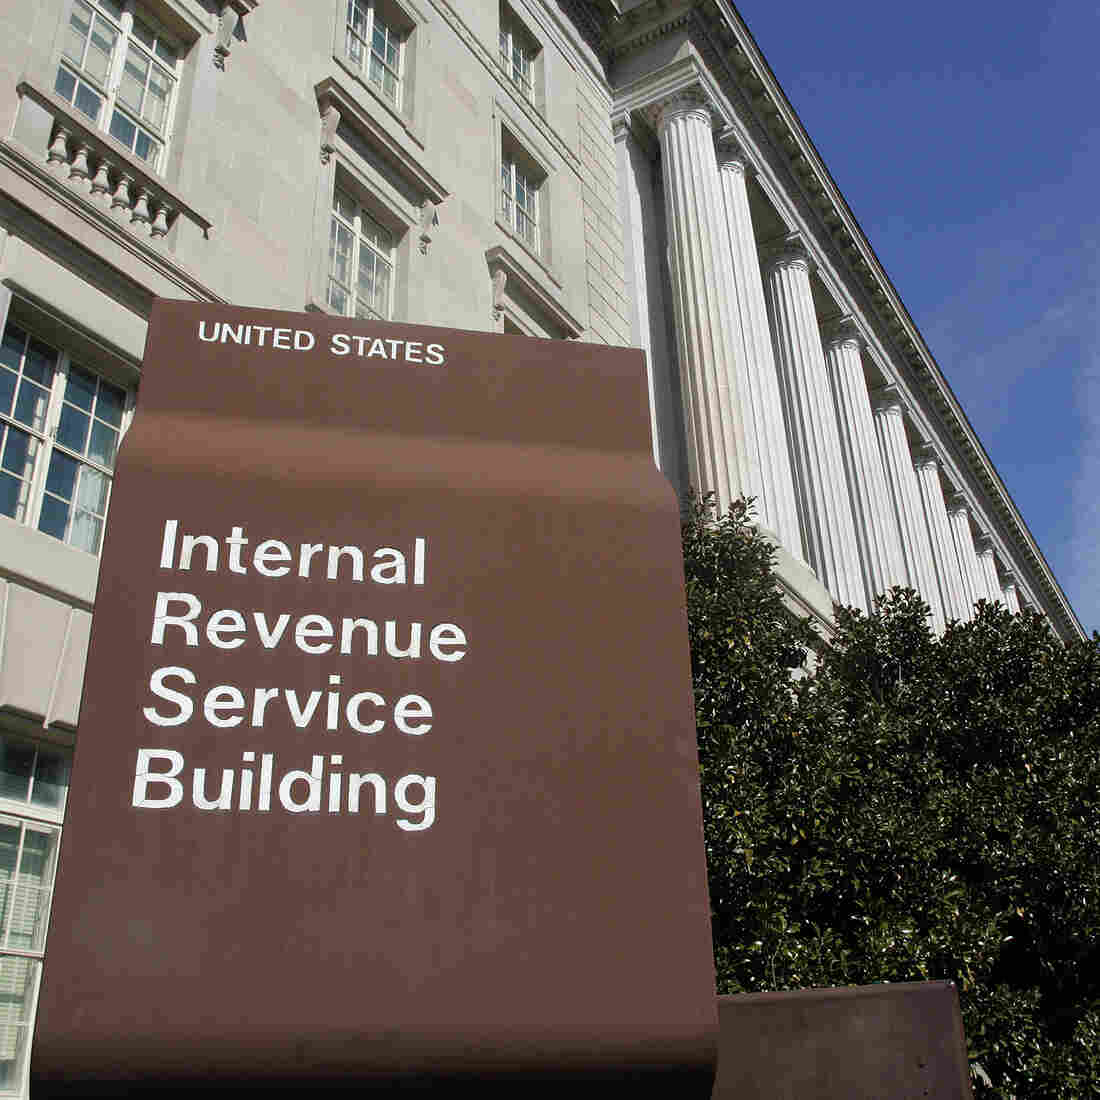 IRS Targeted Additional Conservative Groups, Probe Shows